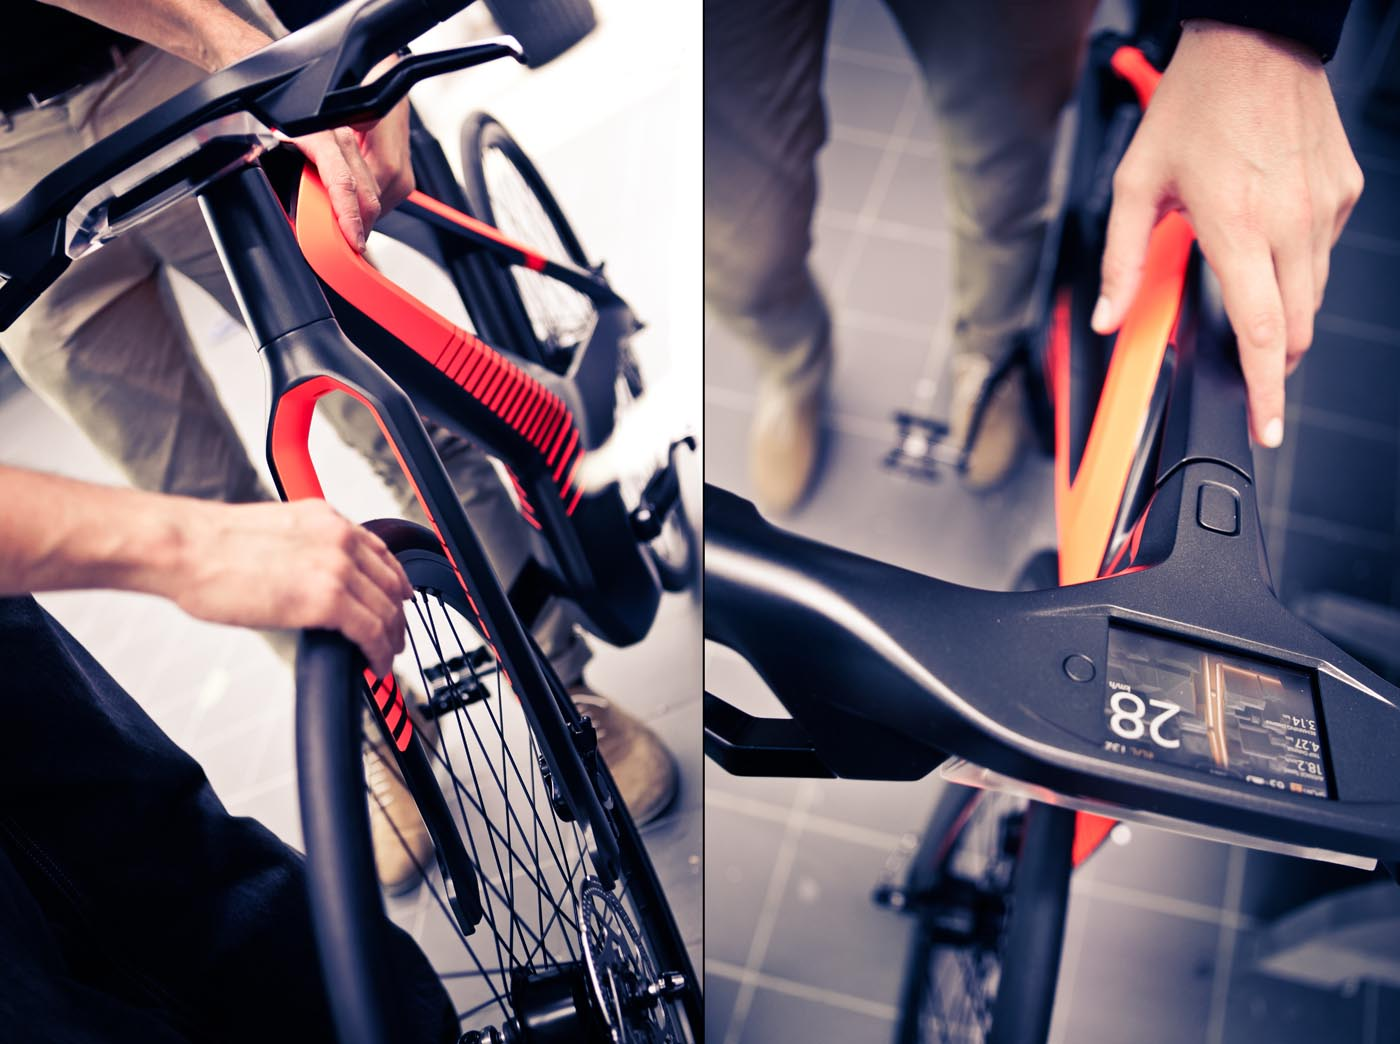 Transportation - Making of - Peugeot Cycles EDL132 Concept e-Bike